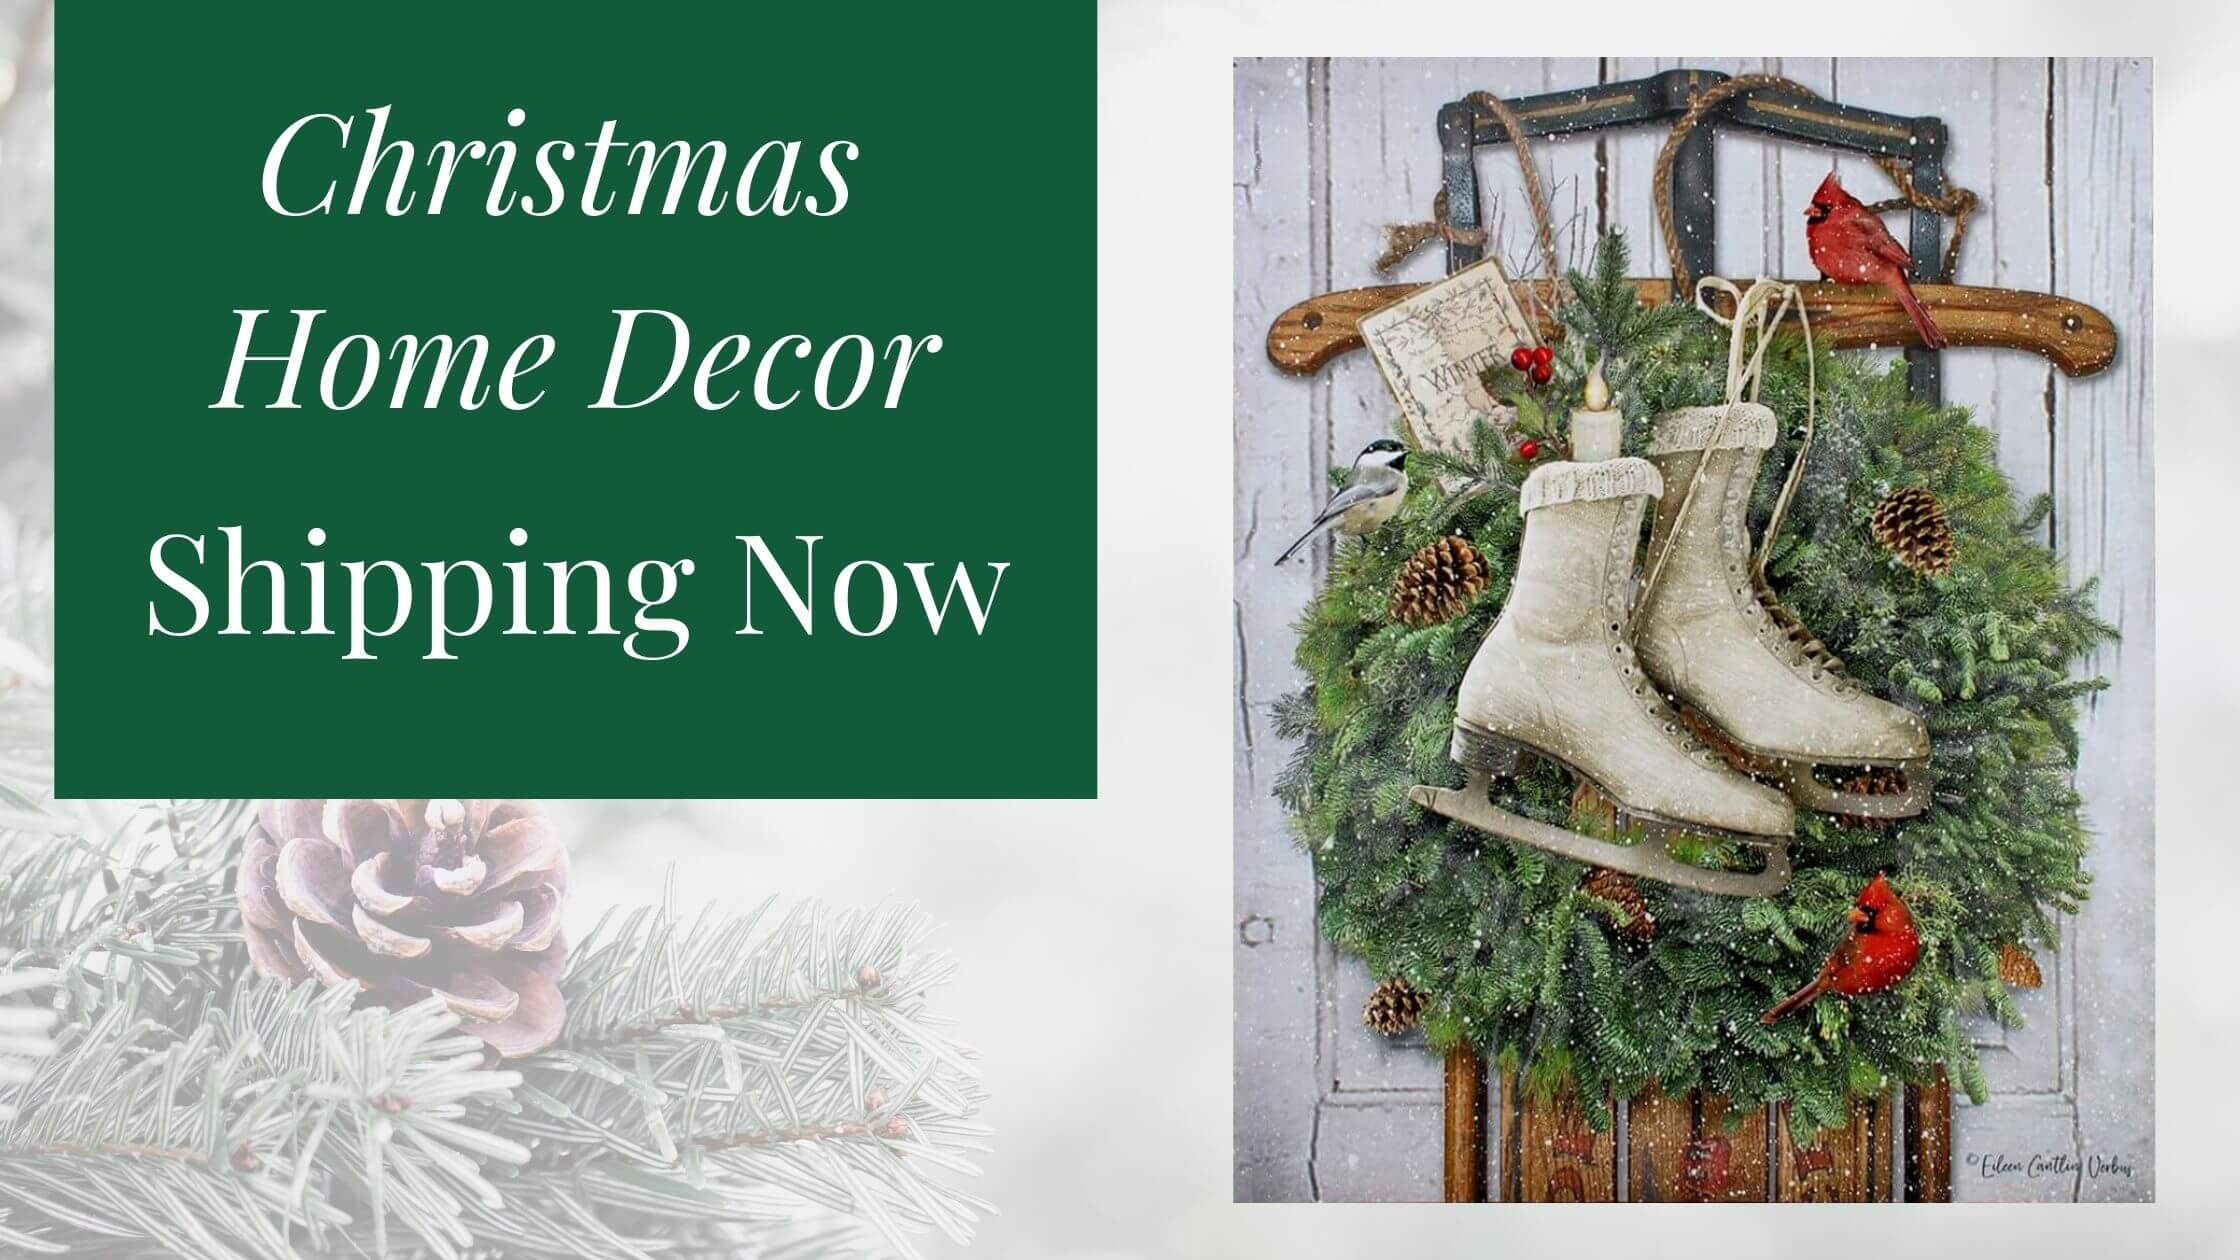 Wholesale Christmas Decorations shipping now